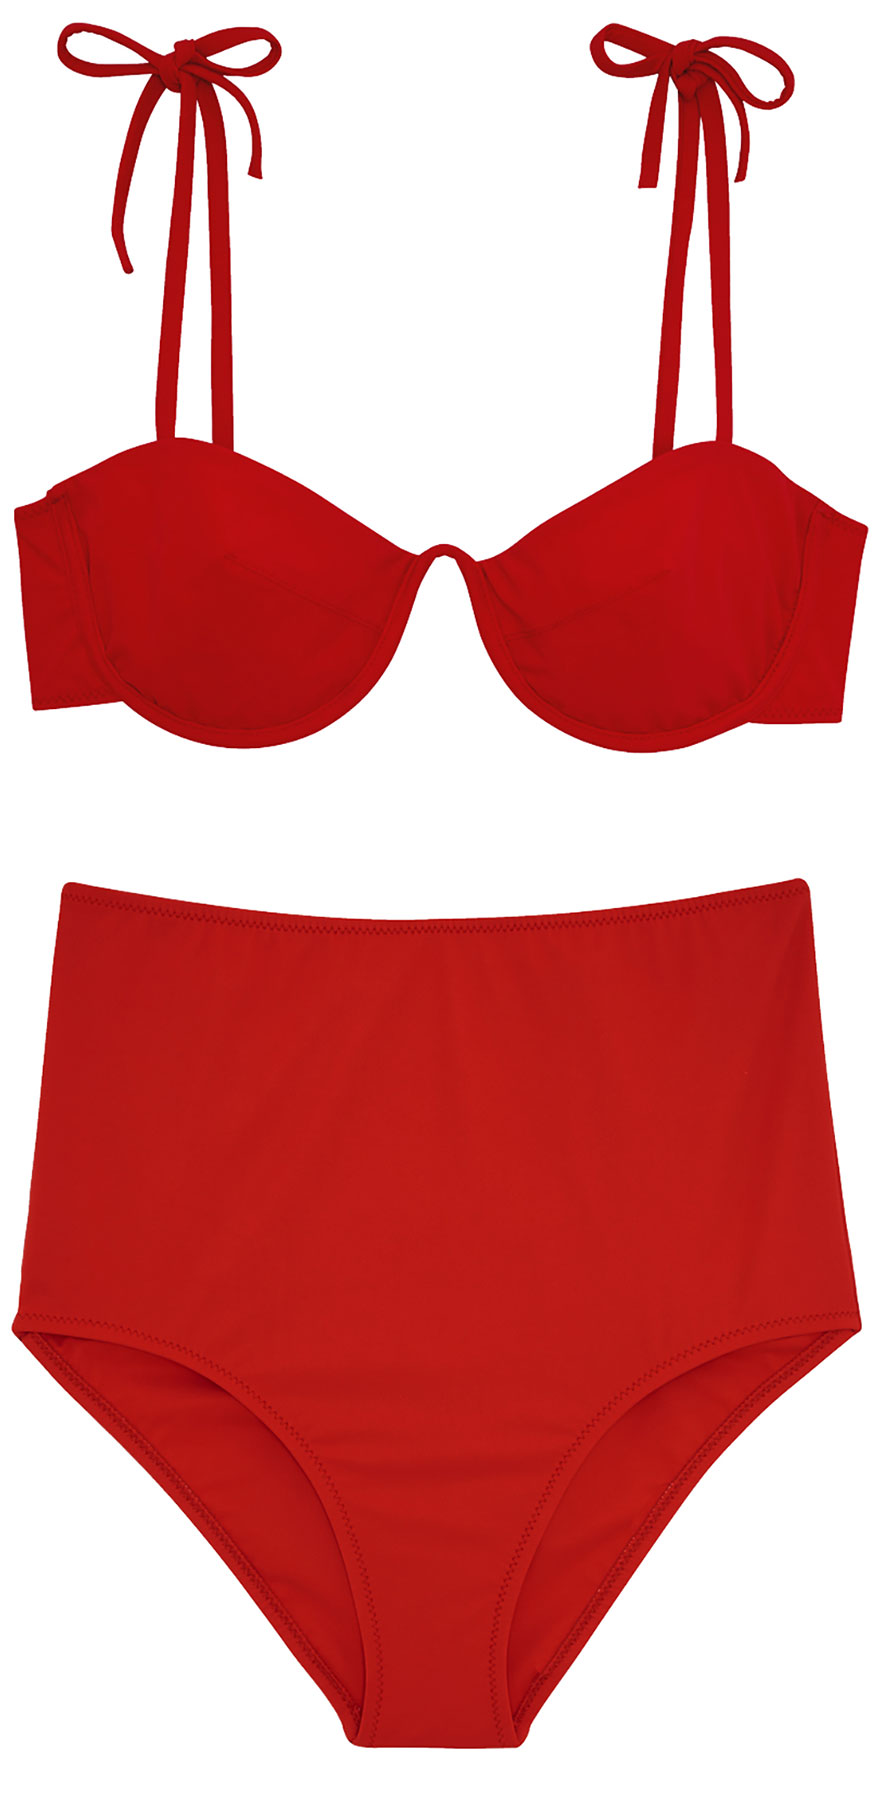 Araks Myriam red retro high-waisted bikini